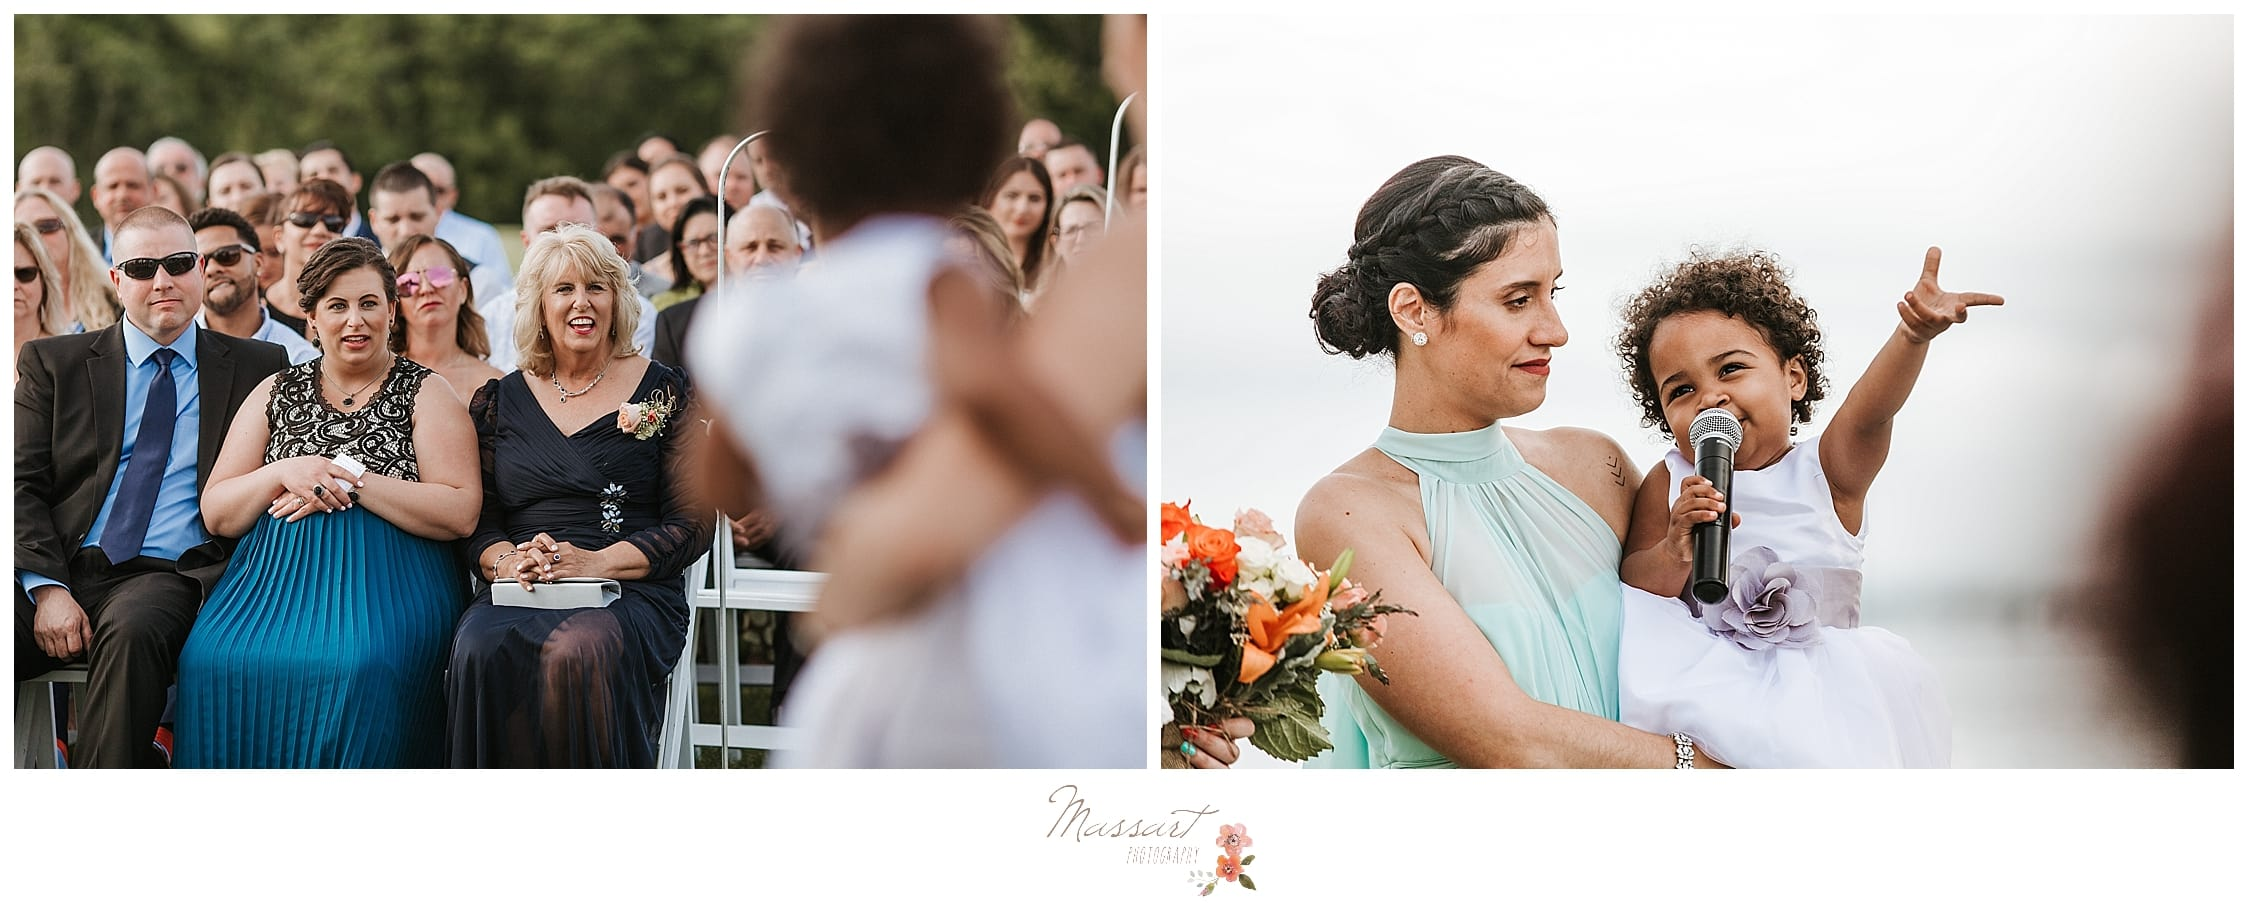 Flower girl hanging out with bridesmaid during wedding ceremony at Harbor Lights photographed by RI wedding photographers Massart Photography.